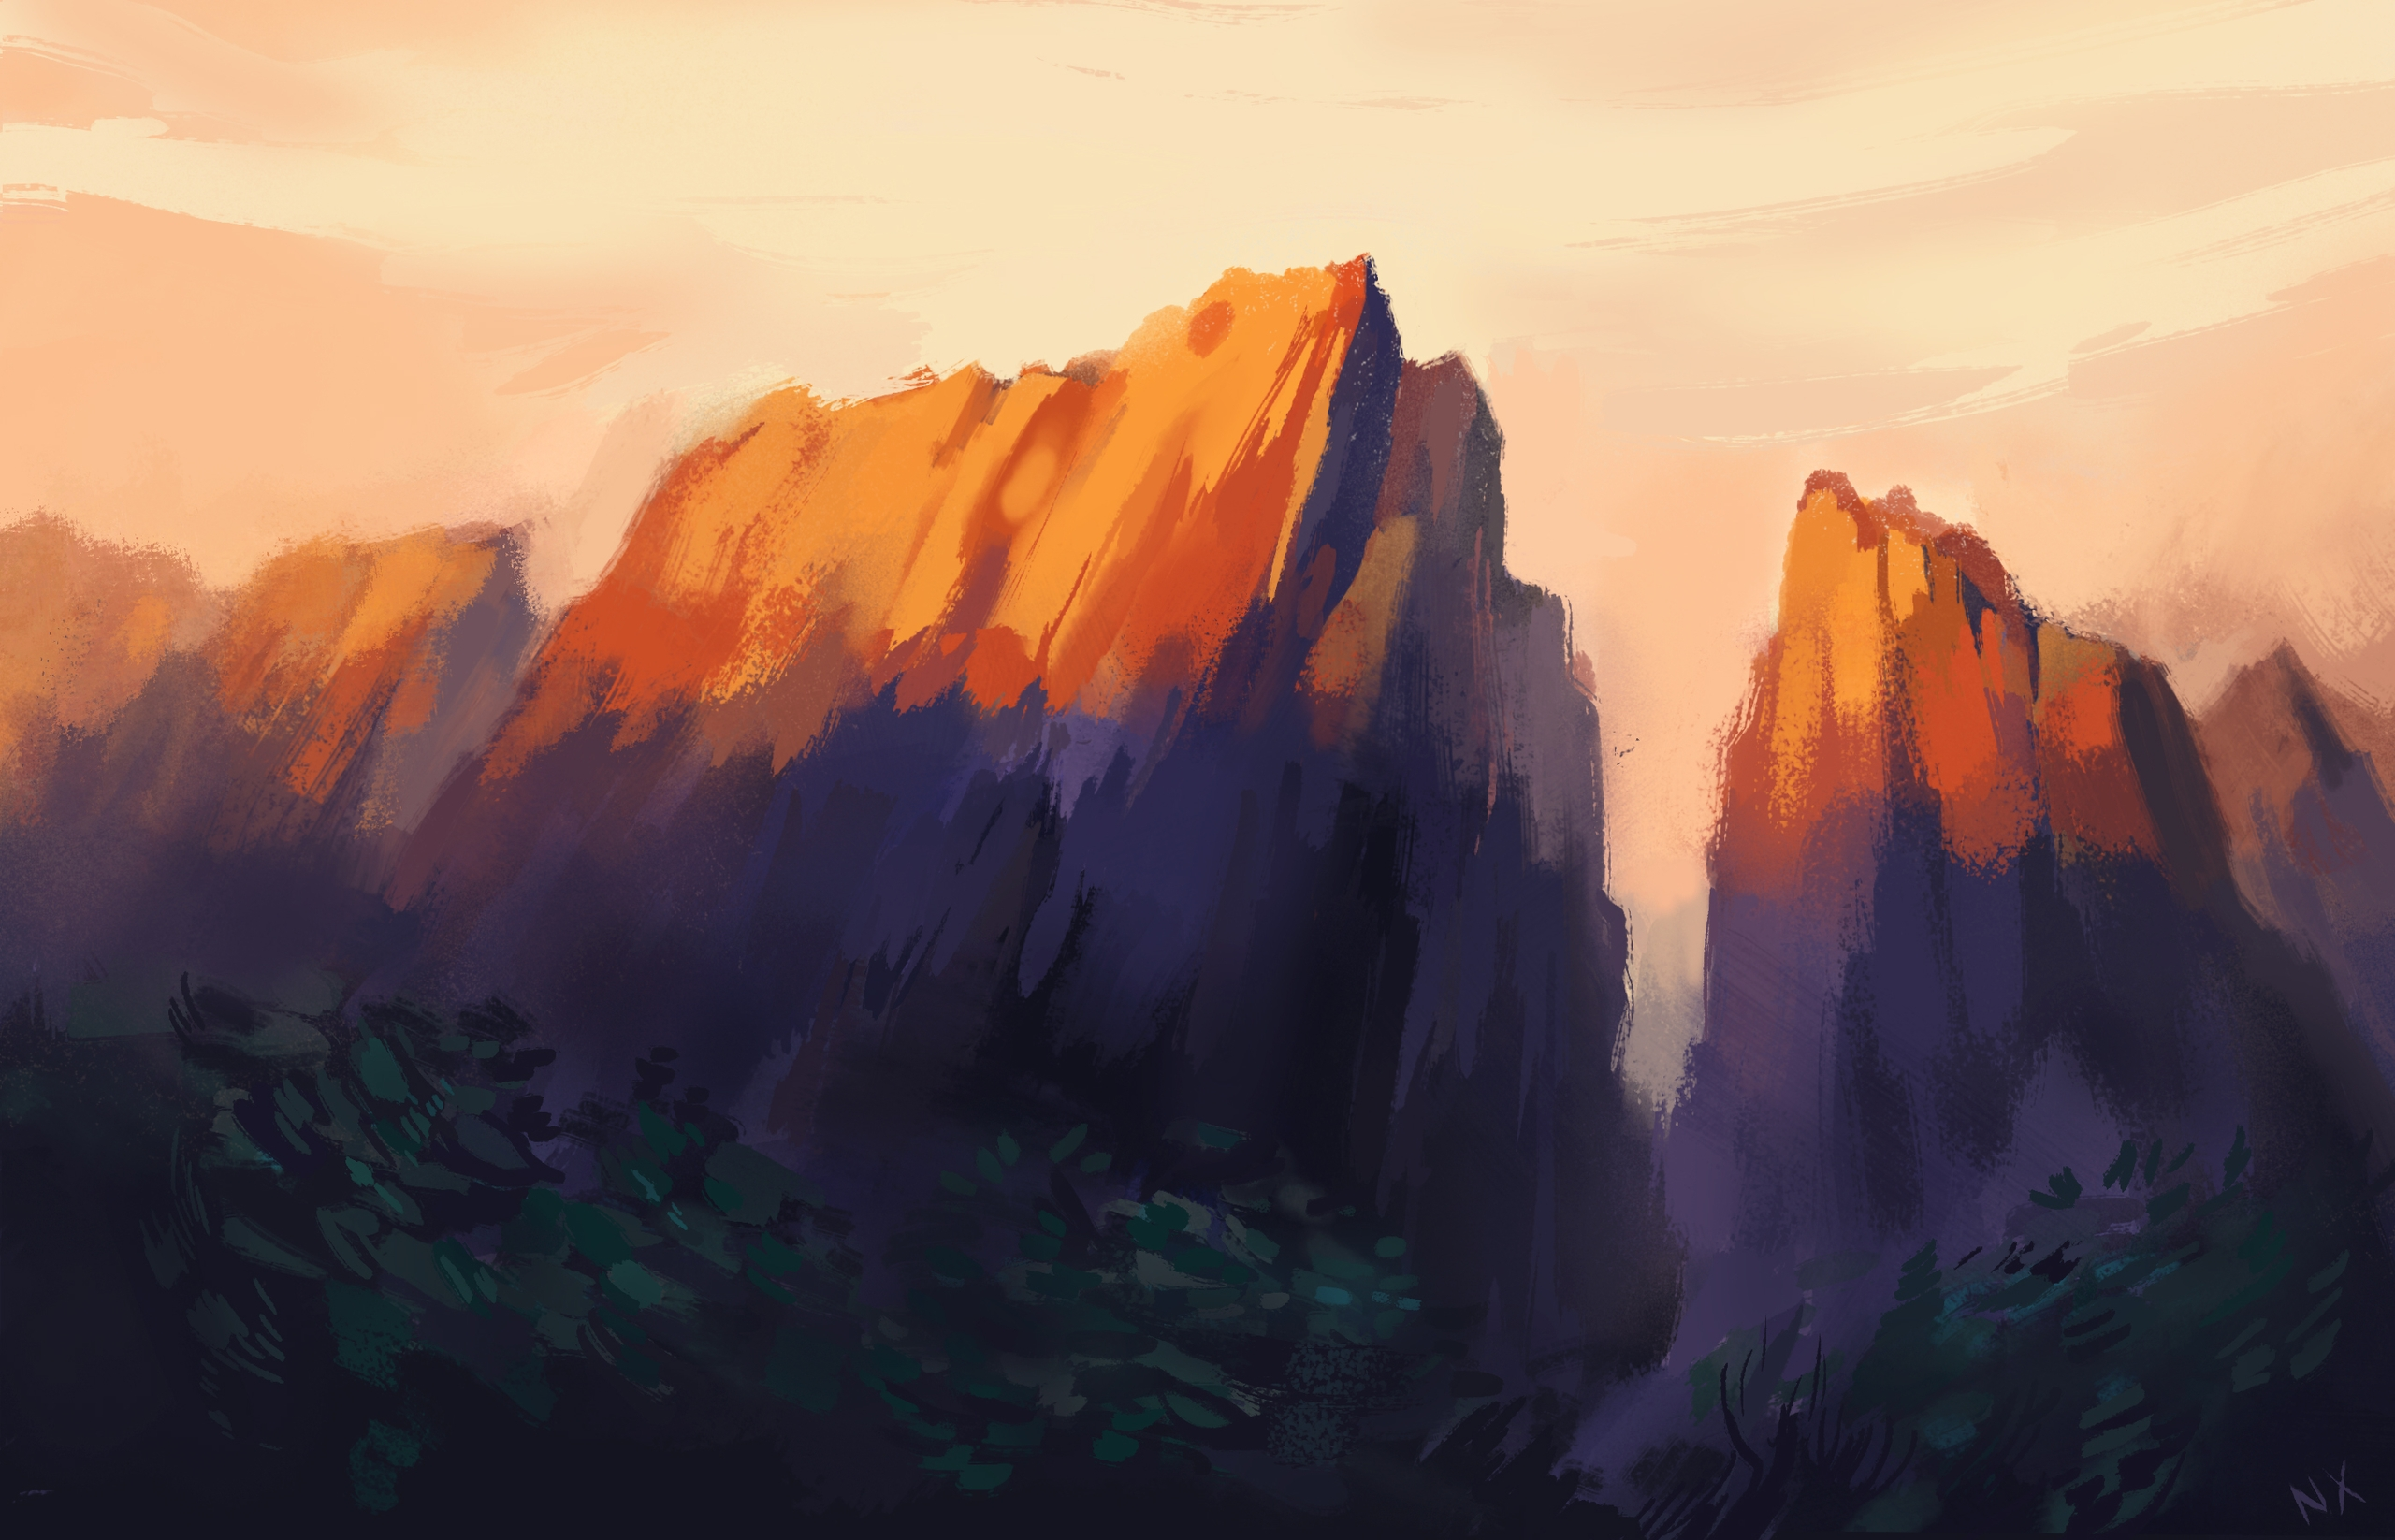 Mountain light - illustration, sunset - nicolexu-8498 | ello